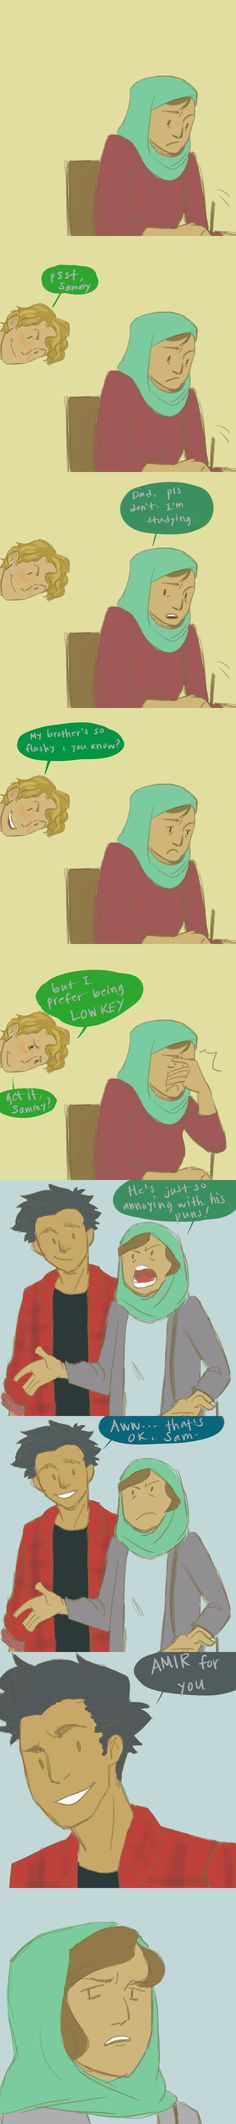 """I've always thought Loki to be the """"dad jokes"""" type of dad and Amir would be just as punny. Poor Sam.   #Sam #Loki #Amir"""